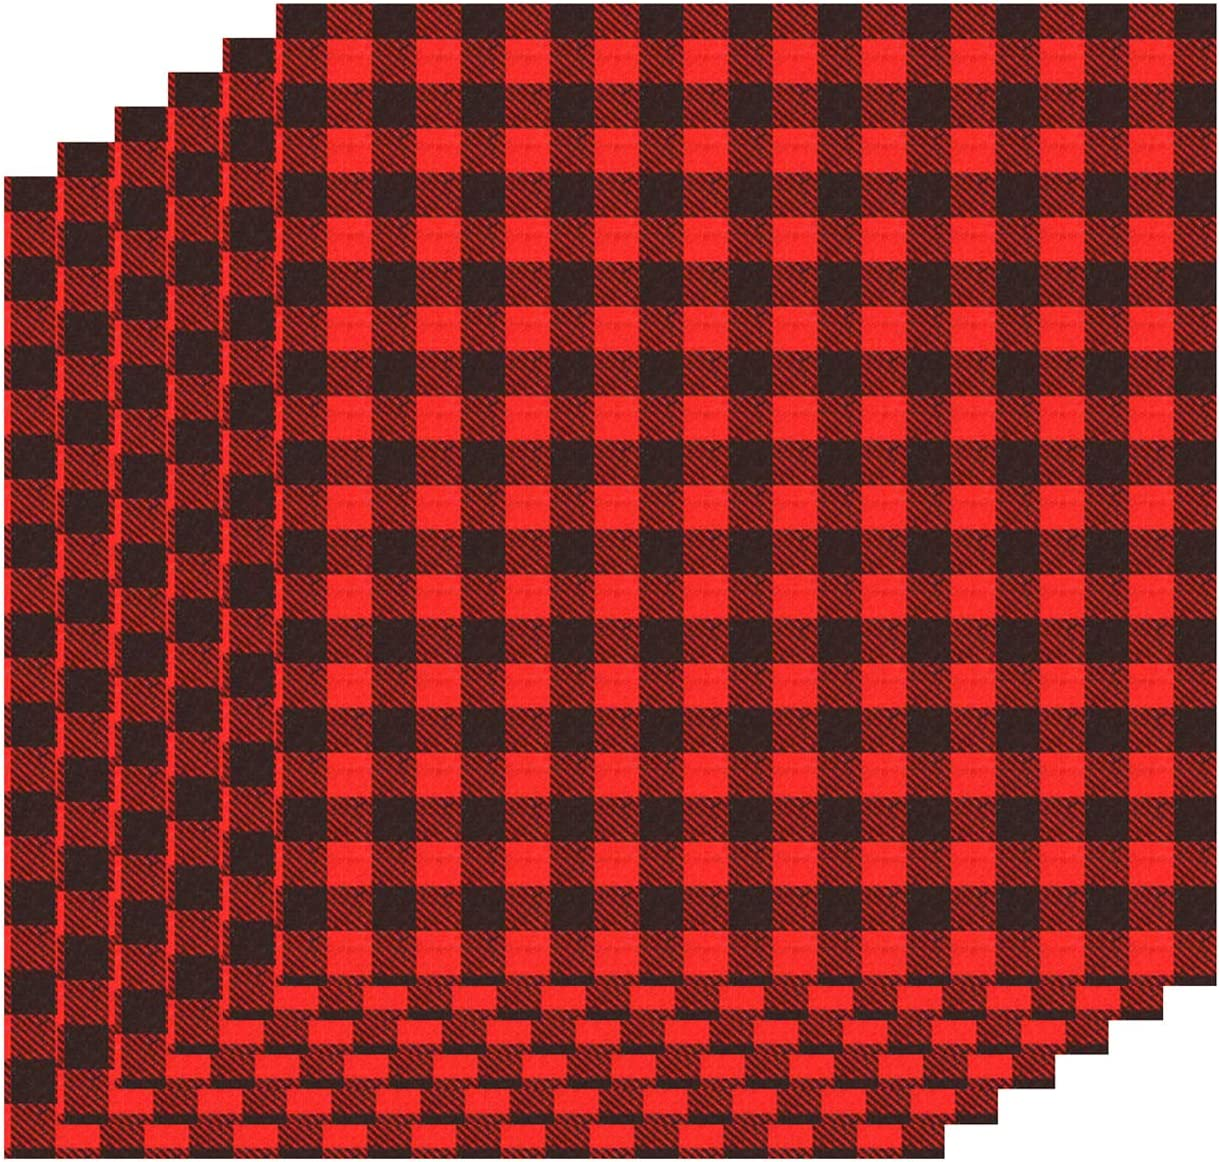 Amazon Com 6 Sheets 12 12 Inch Cloth Fabric Buffalo Plaid Printed Iron On Sheet Black And Red Plaid Adhesive Thermal Transfer Heat Transfer Cloth Sheets